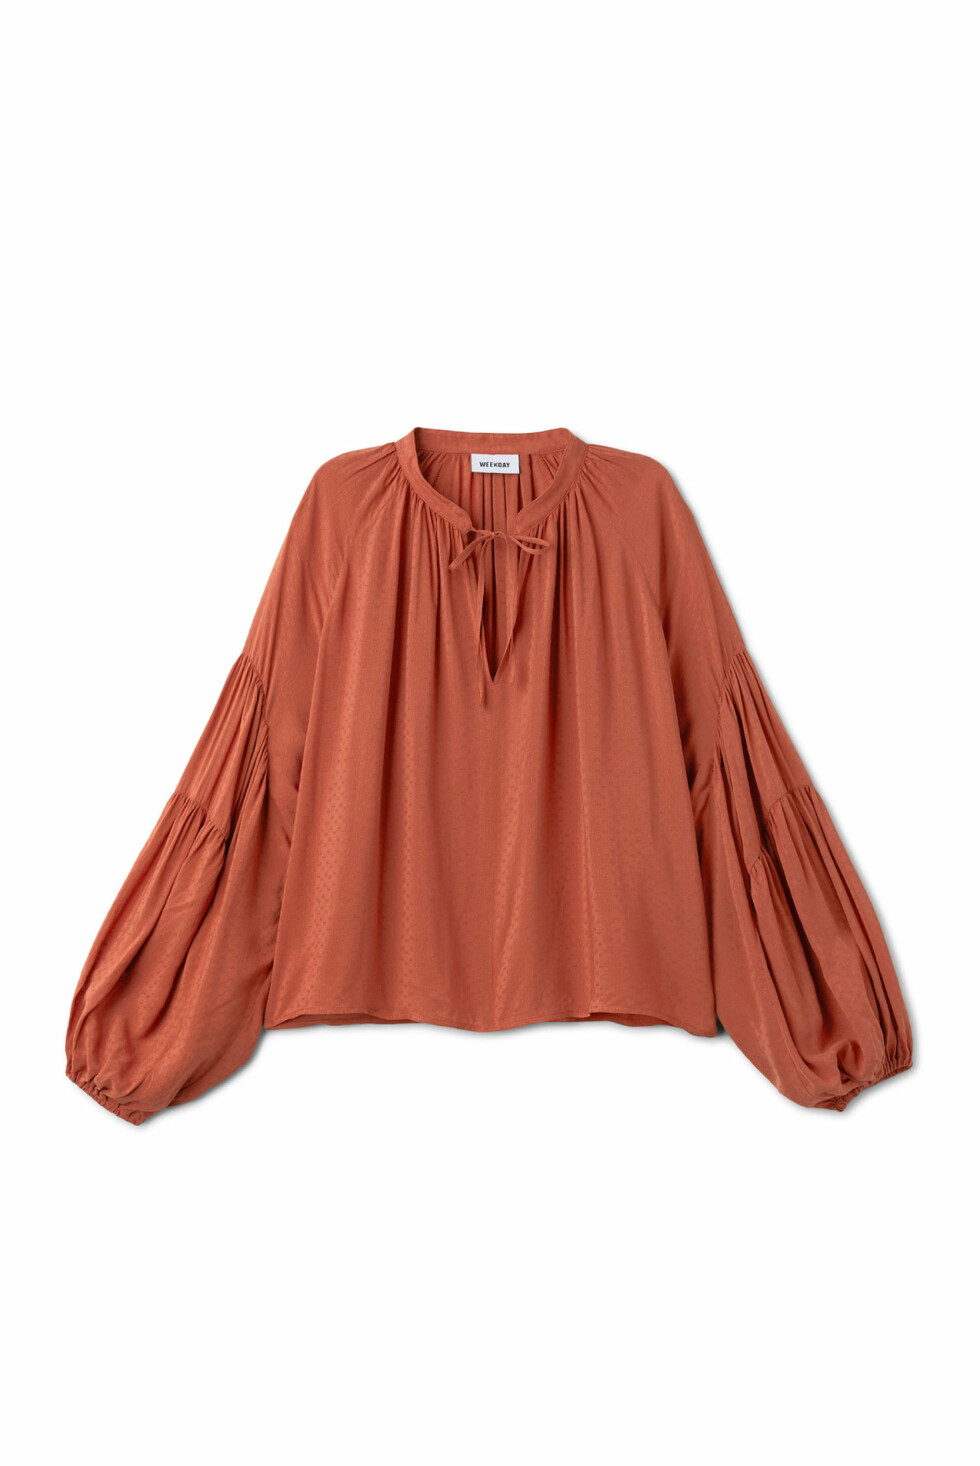 Topp fra Weekday |450,-| https://www.weekday.com/en_sek/women/categories/shirts-and-blouses/product.miles-blouse-orange.0587369001.html